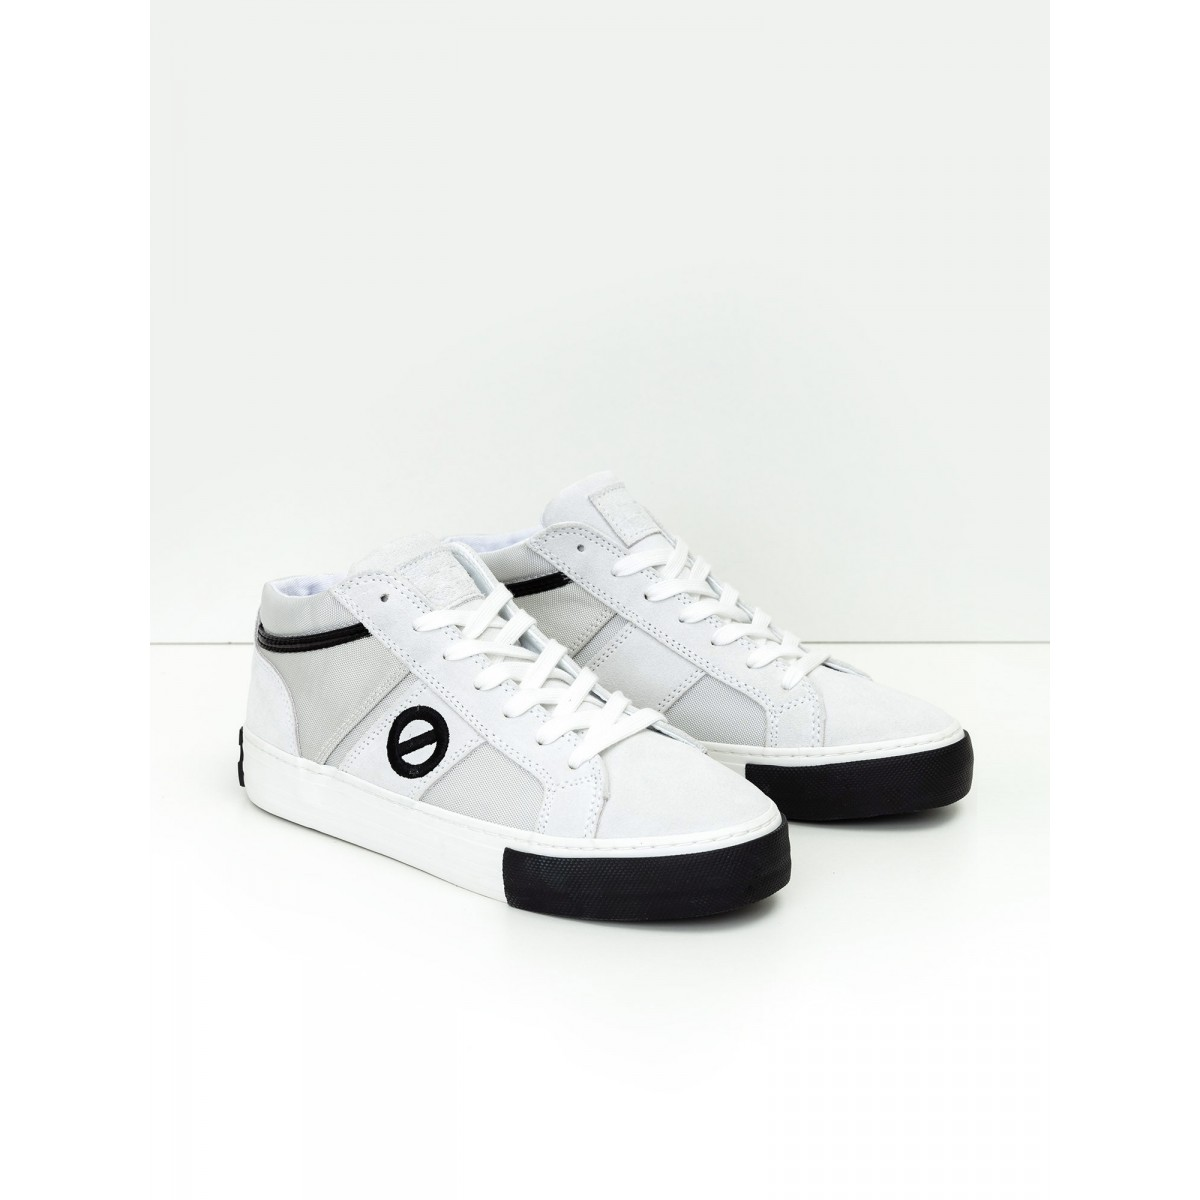 No Name Arcade Basket - Suede/Nylon - White/White